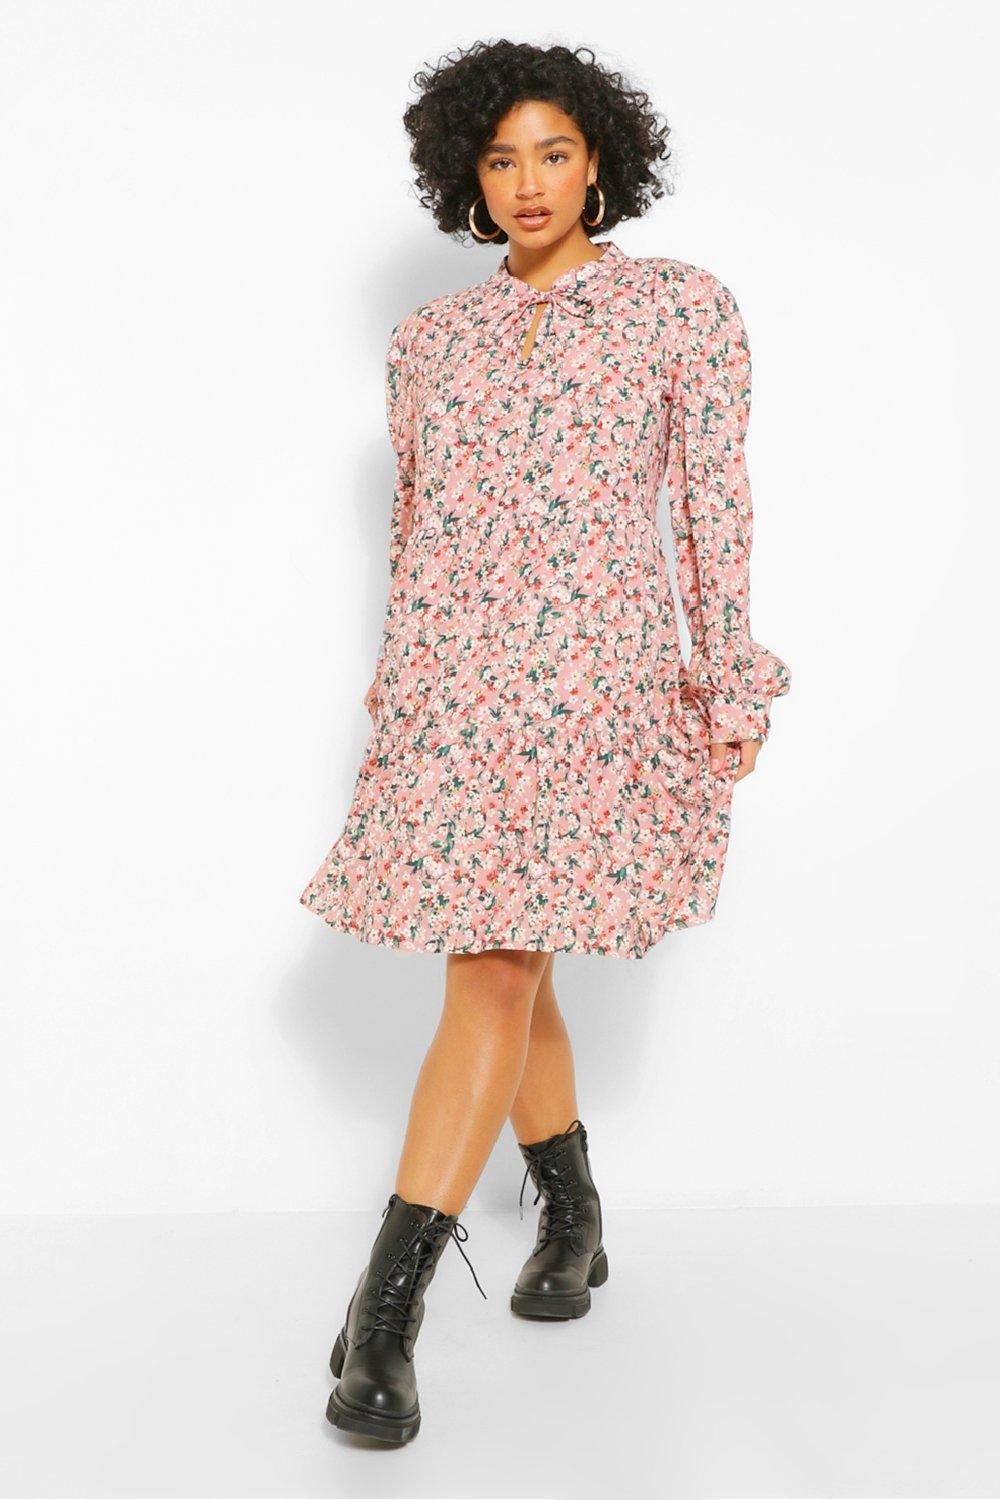 Cottagecore Clothing, Soft Aesthetic Womens Plus Ditsy Floral Tiered Smock Dress - Pink - 16 $15.00 AT vintagedancer.com